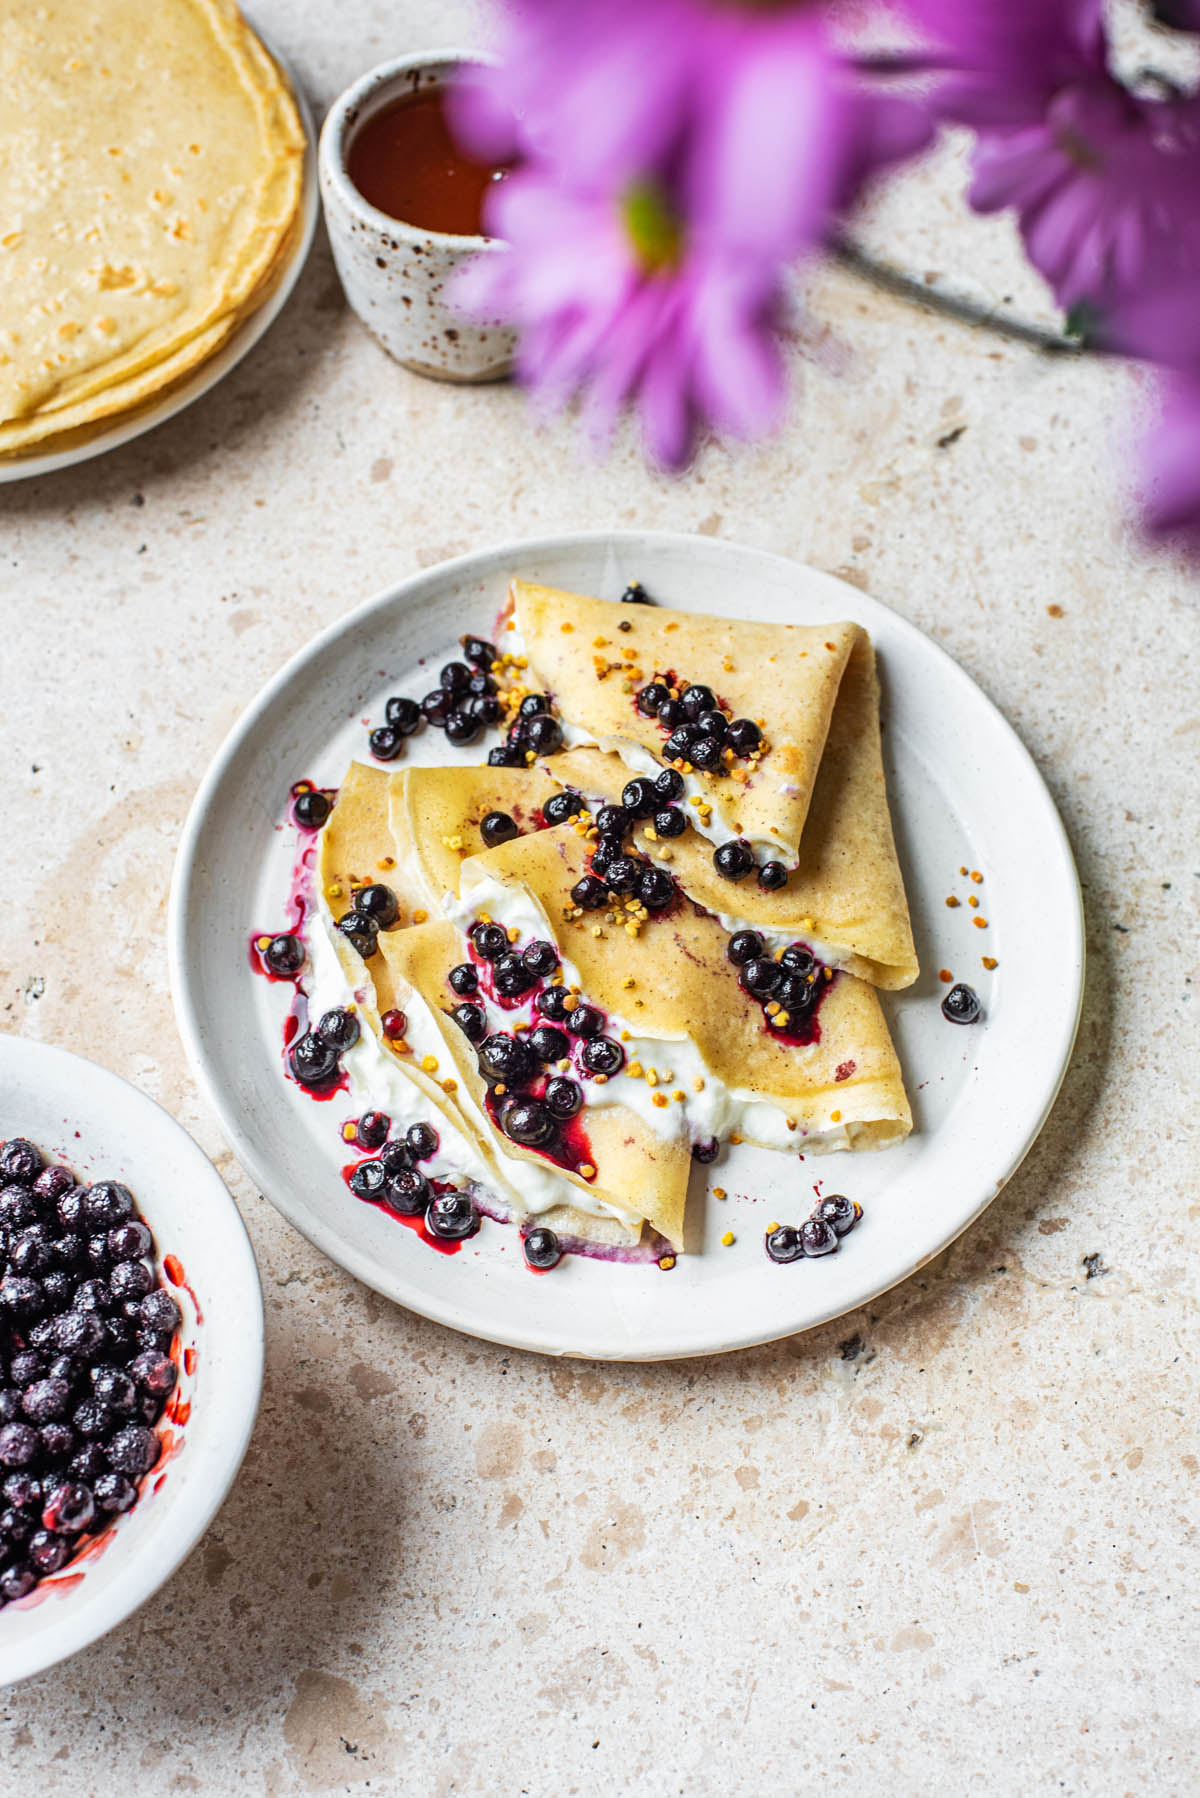 Folded crepes with extra berries and crepes nearby.